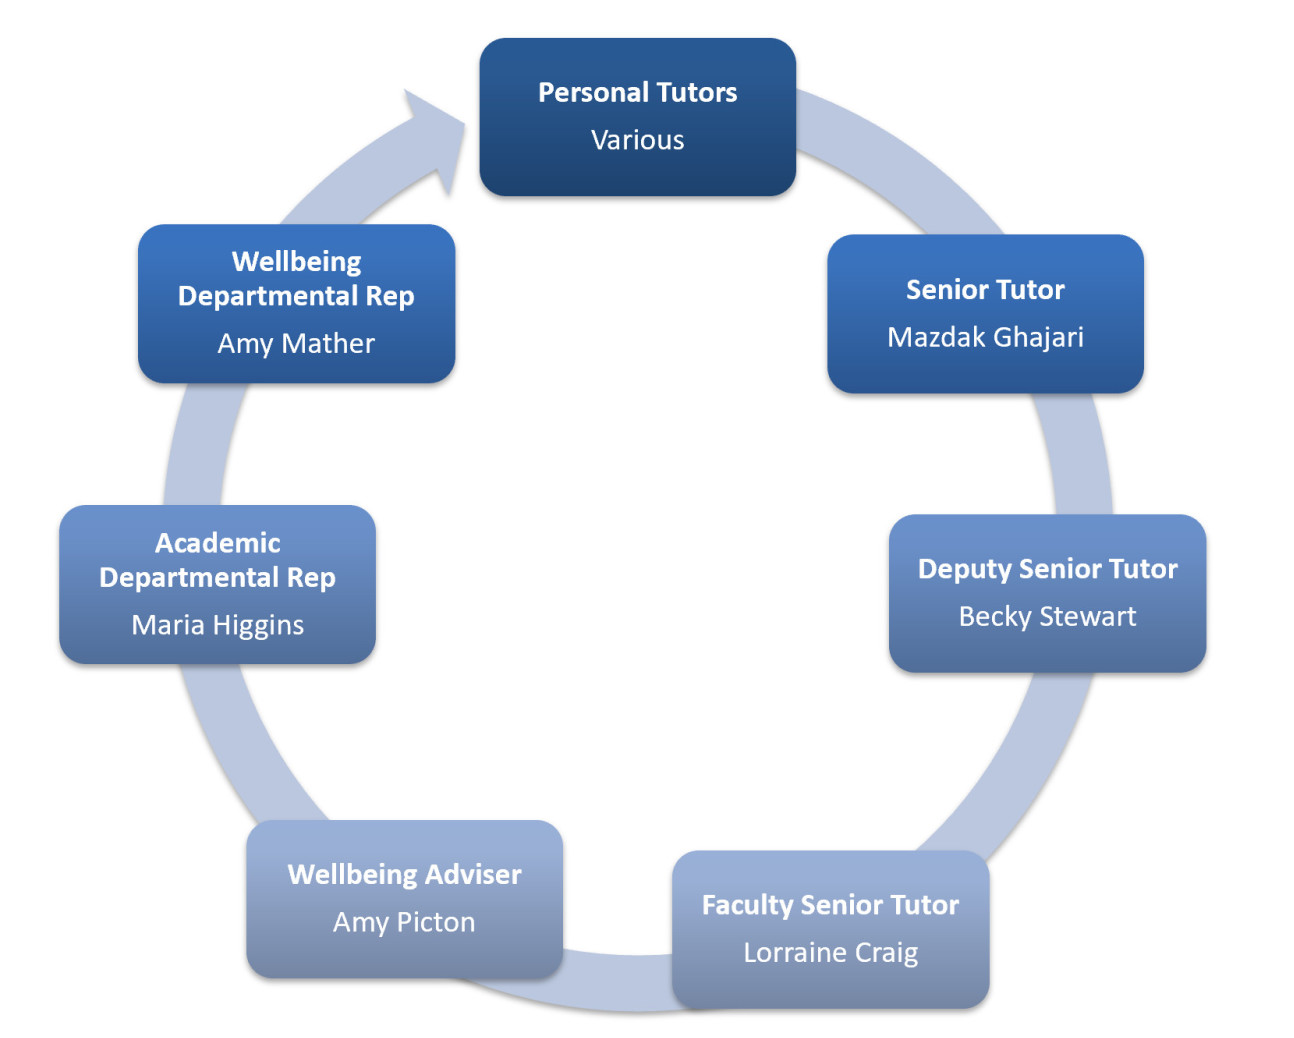 Diagram to show Wellbeing roles in Design Engineering